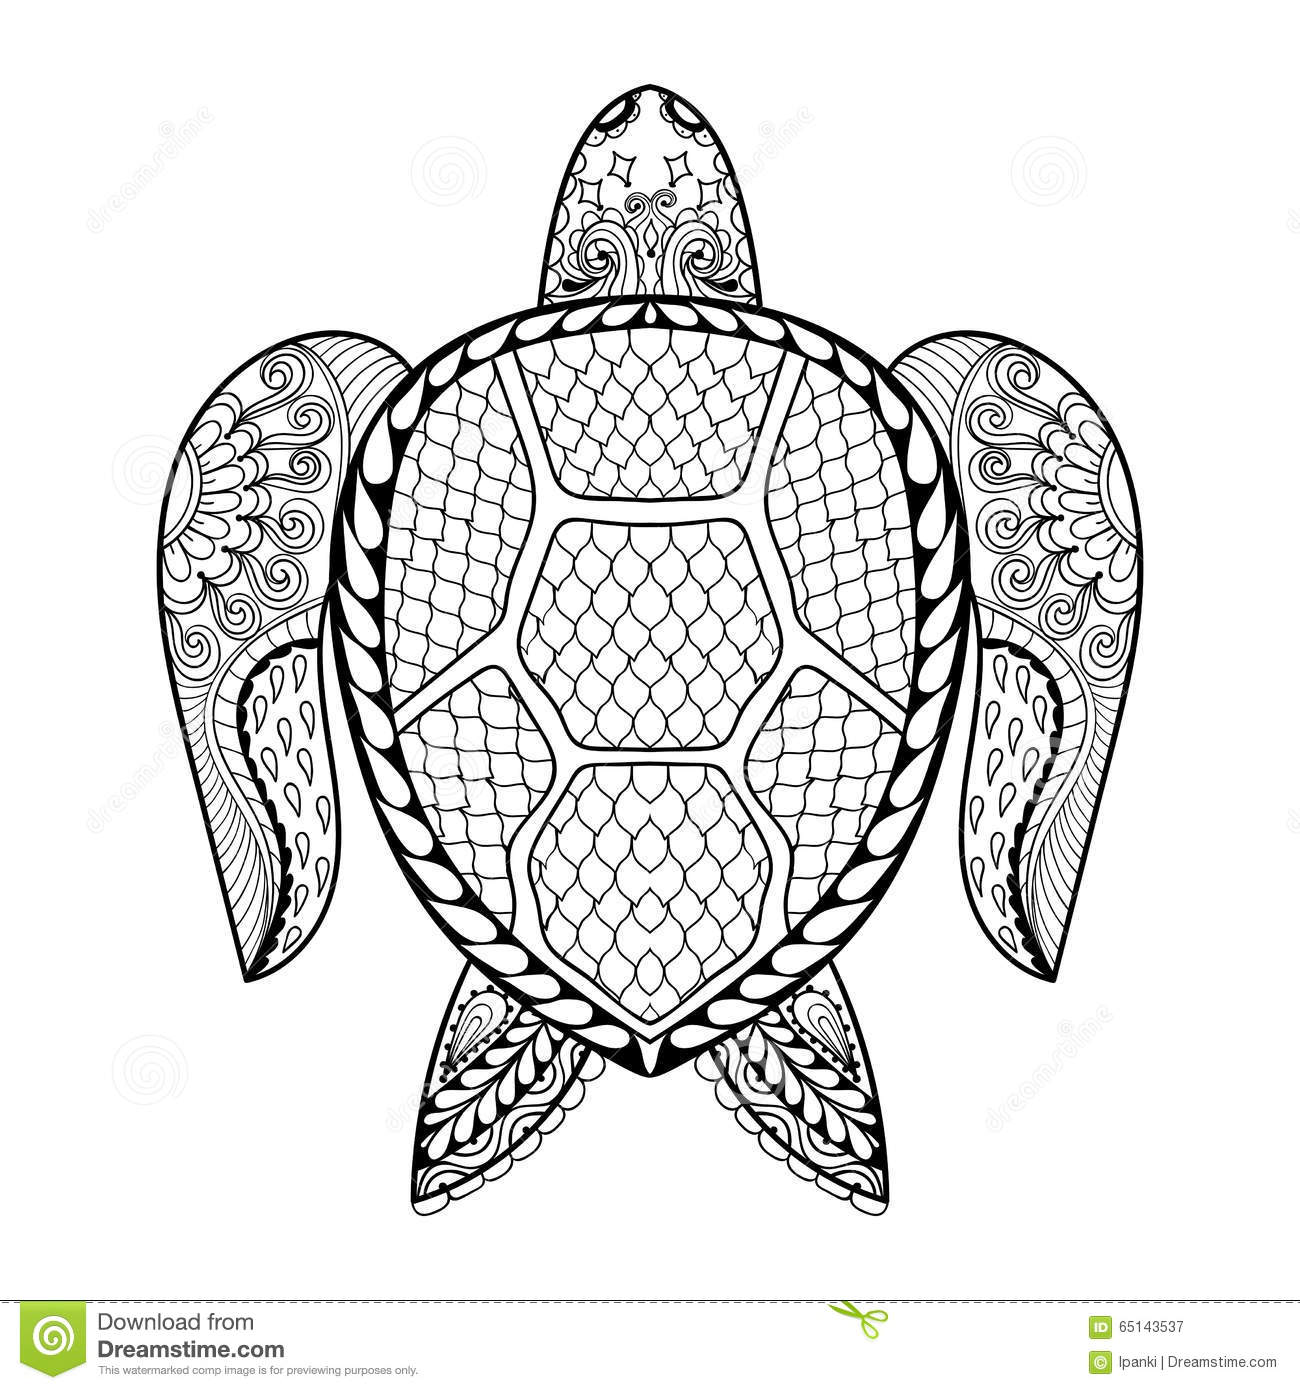 Hand Drawn Sea Turtle For Adult Coloring Pages In Doodle ...